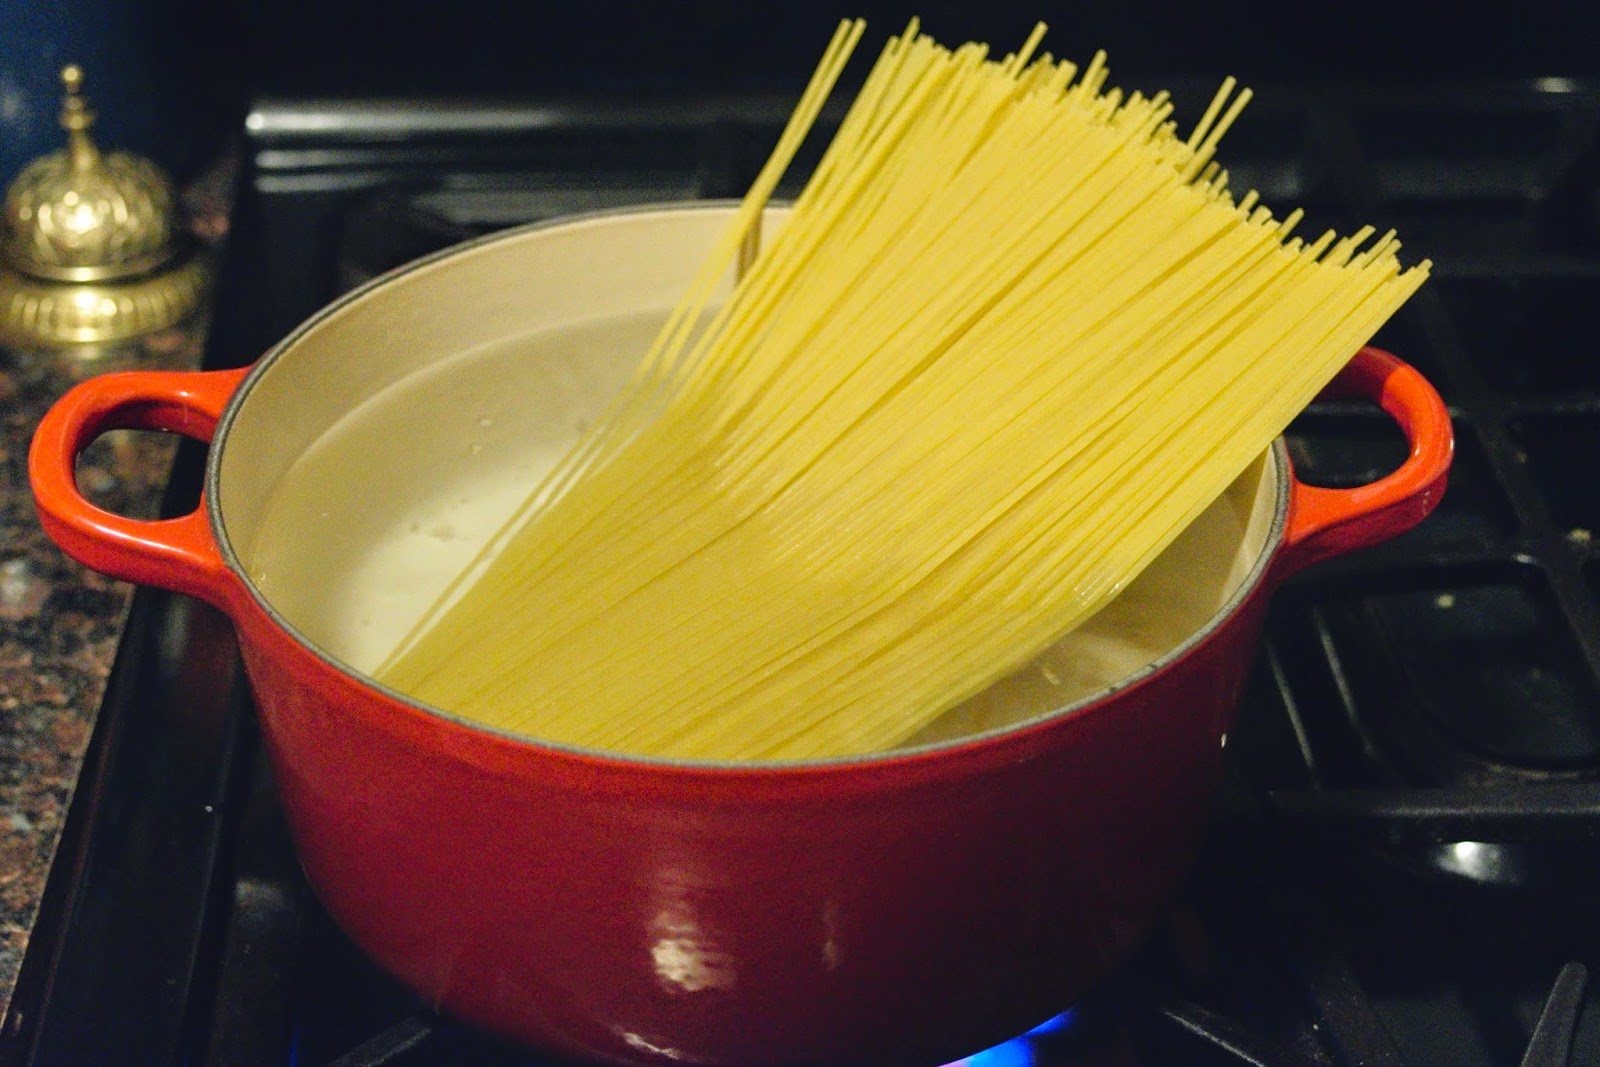 Pasta being added to the pot of water on the stove.